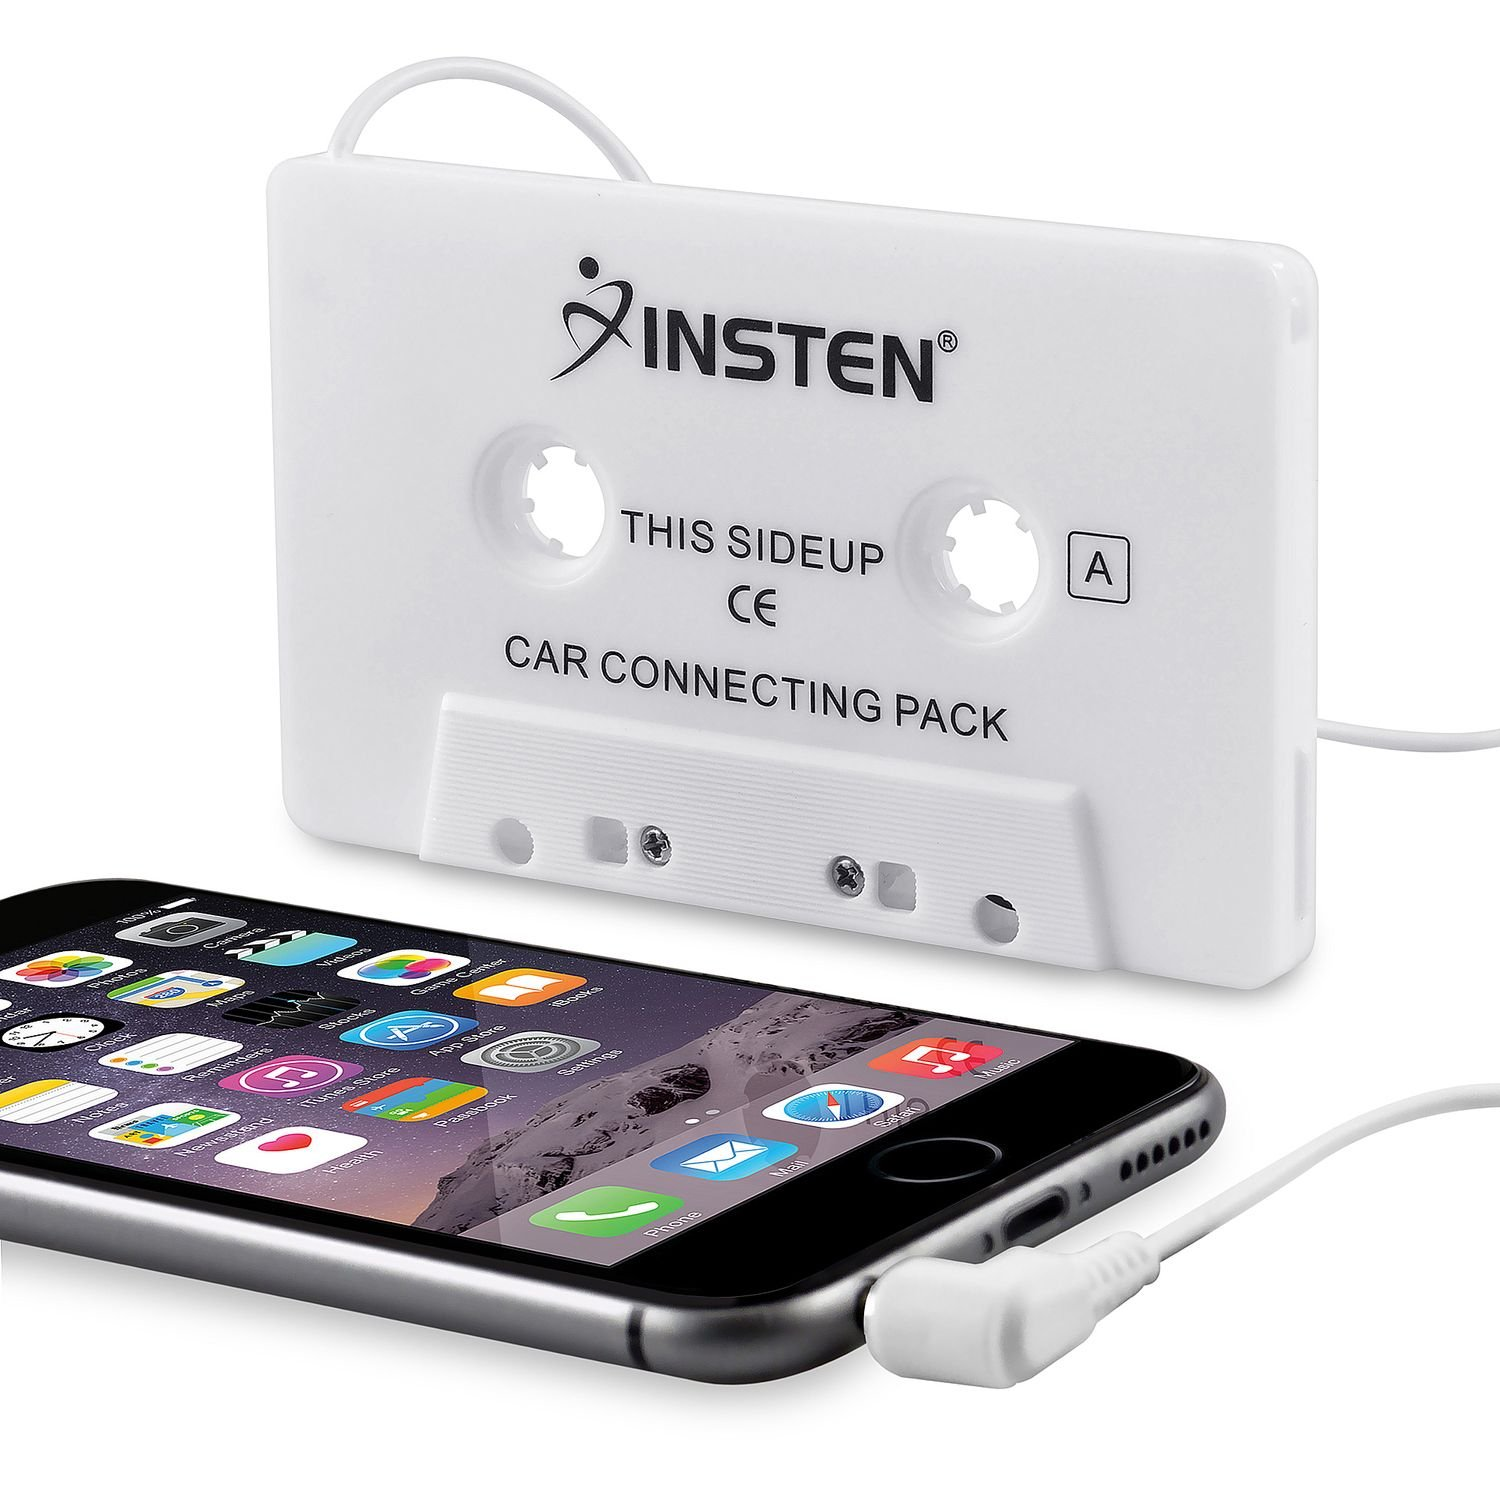 Insten Car Cassette Tape Deck Adapter Compatible with 3.5mm Jack Audio MP3/CD Player 2144684